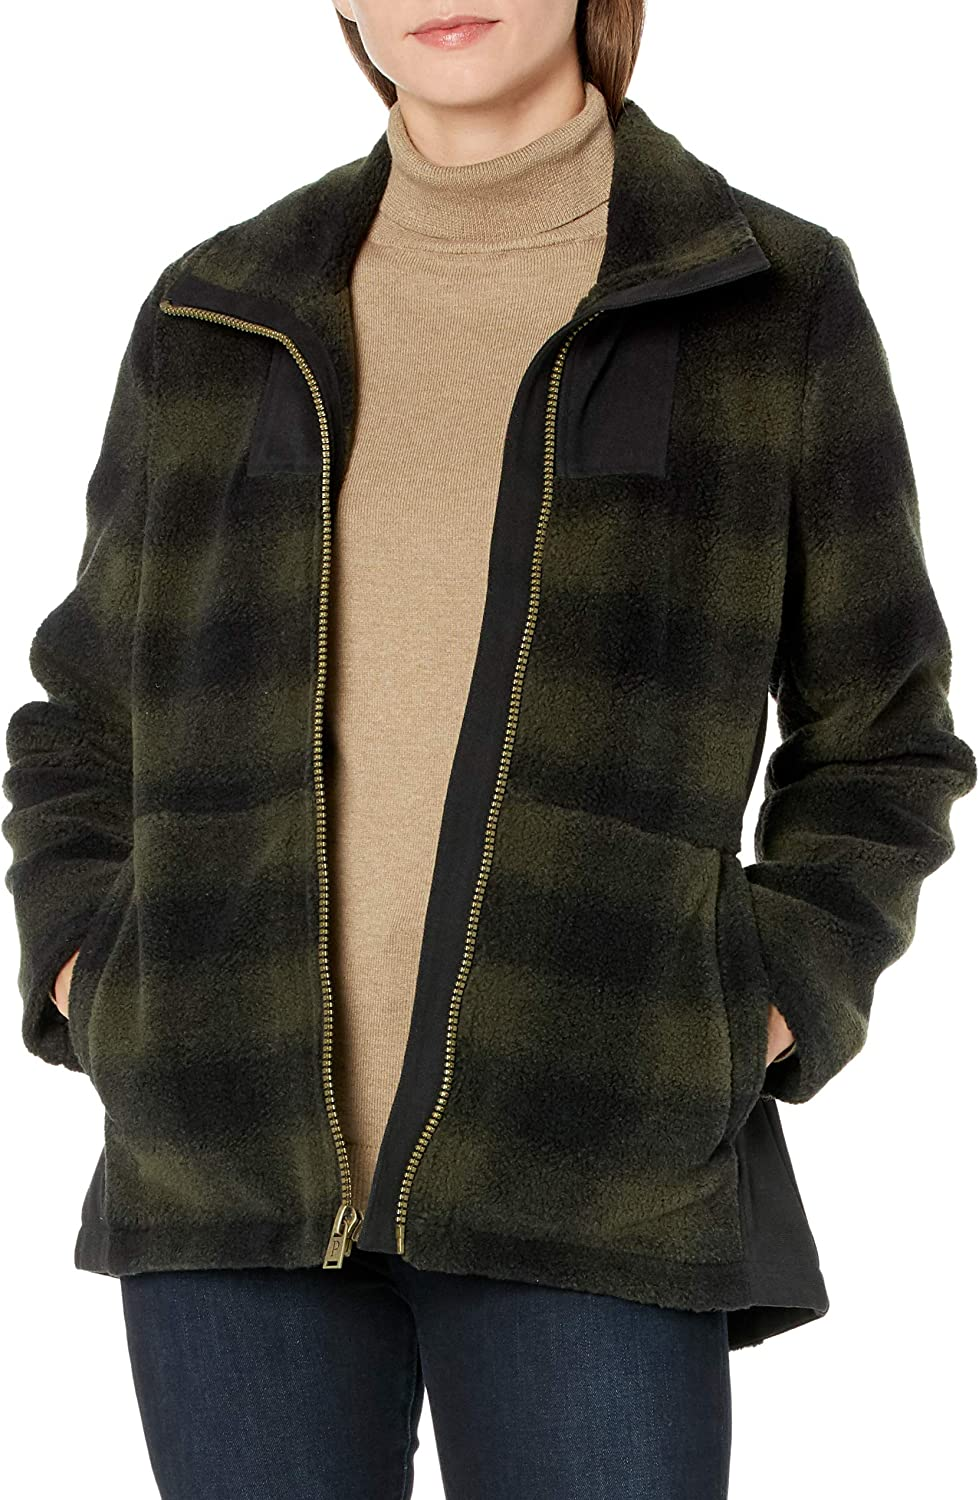 Pendleton Super beauty product restock quality top Challenge the lowest price of Japan ☆ Outerwear Women's Brooke